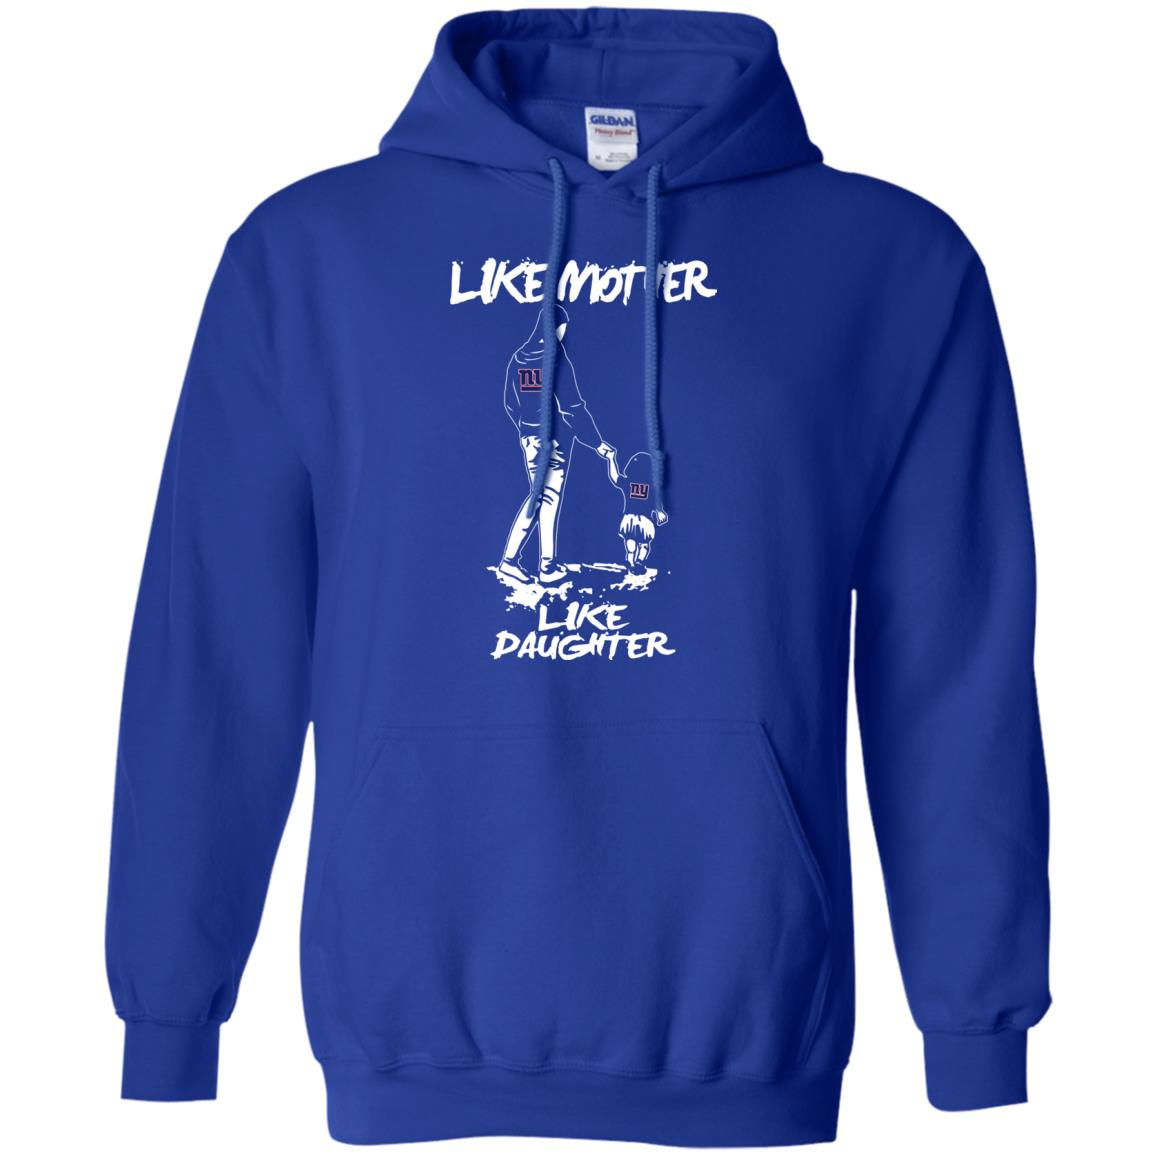 Like Mother Like Daughter New York Giants Hoodie